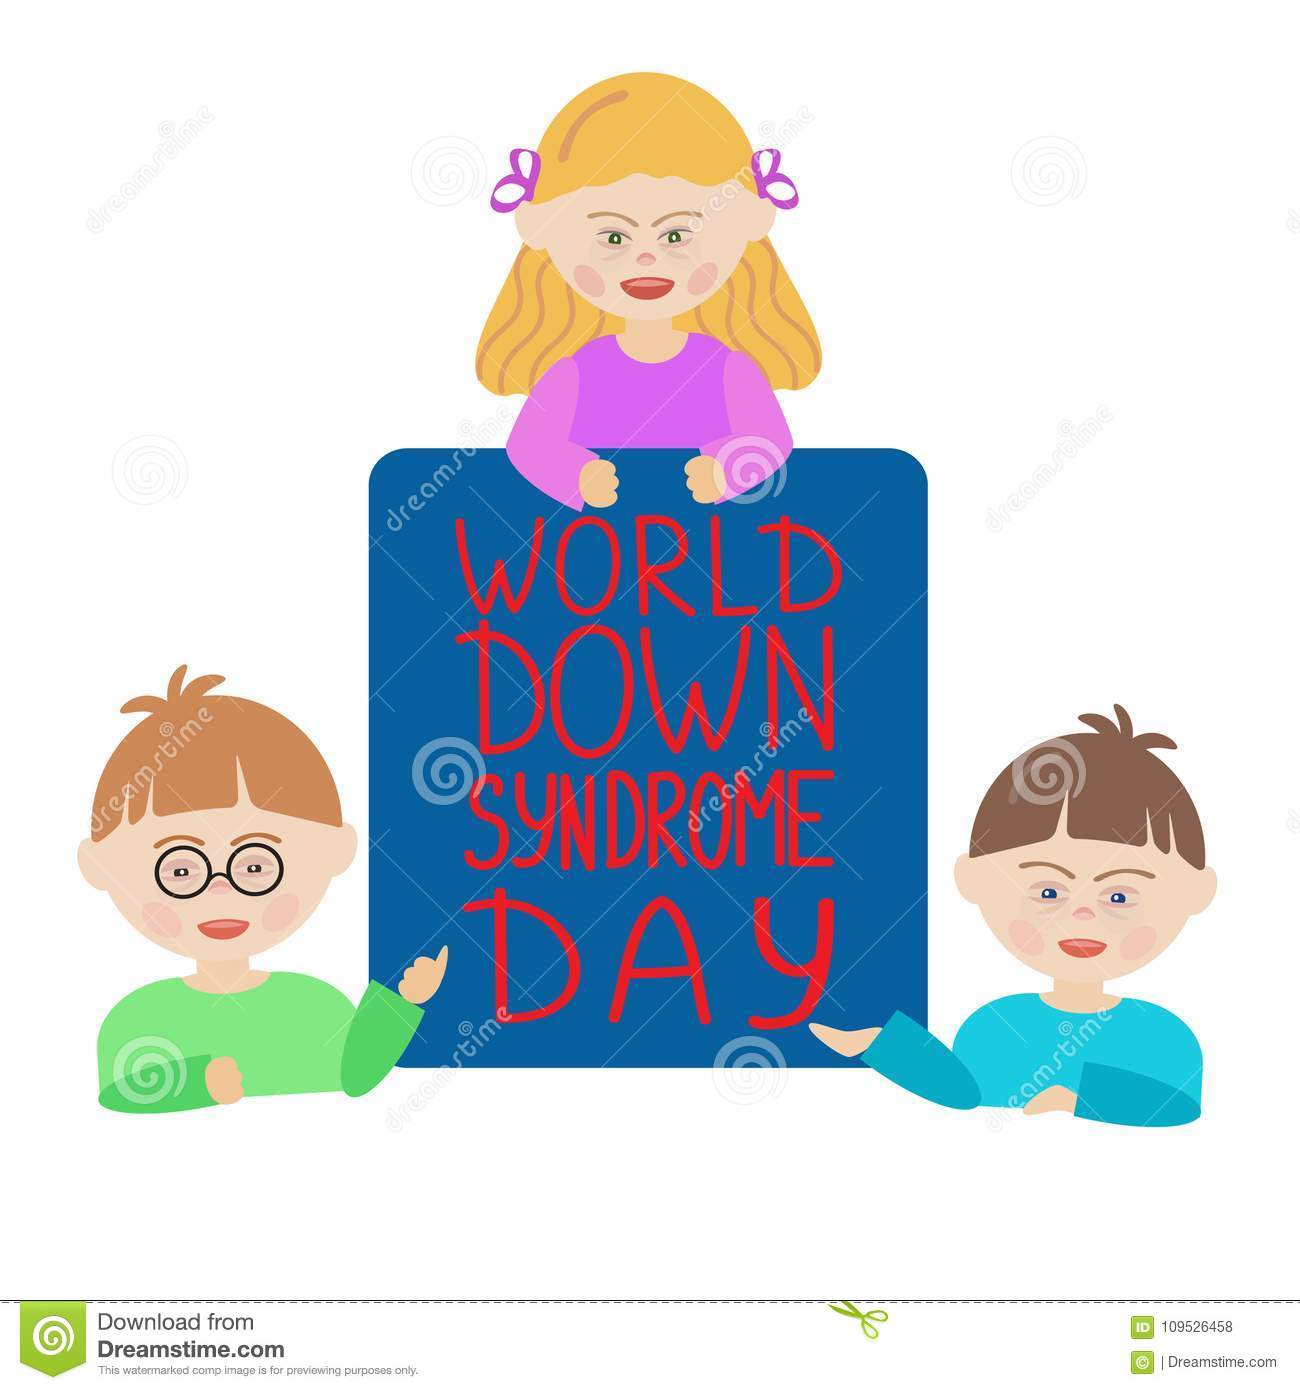 Children with Down syndrome are holding a blue sign that says World Down Syndrome Day.